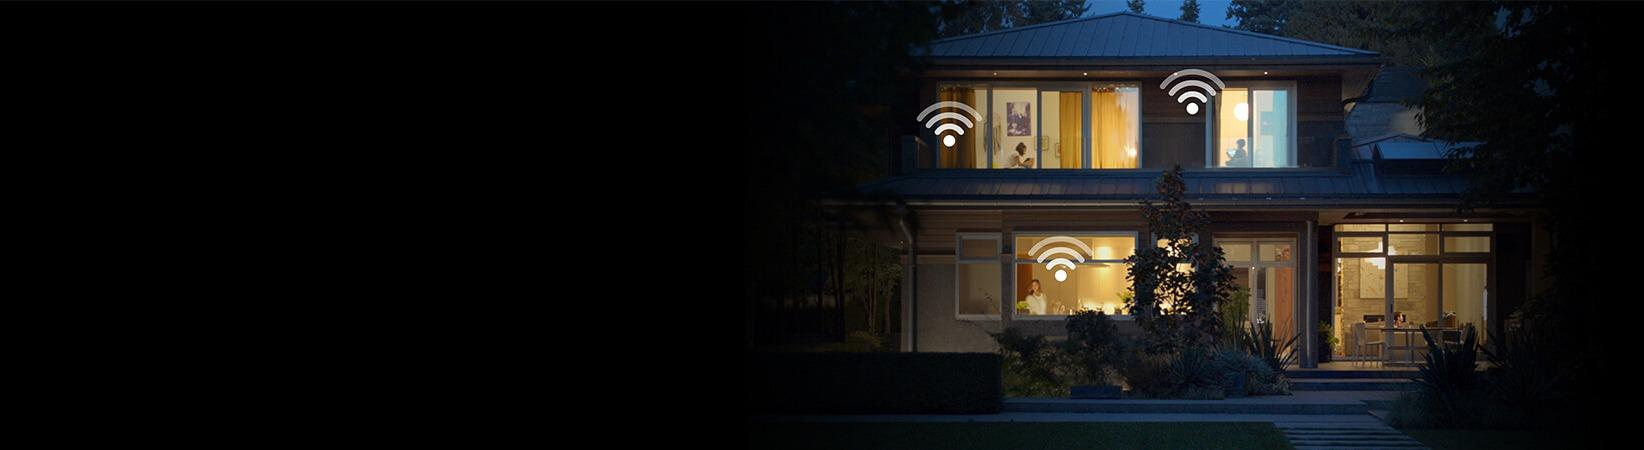 Photo of home at dusk fully connected with Optimum Whole Home Wifi service